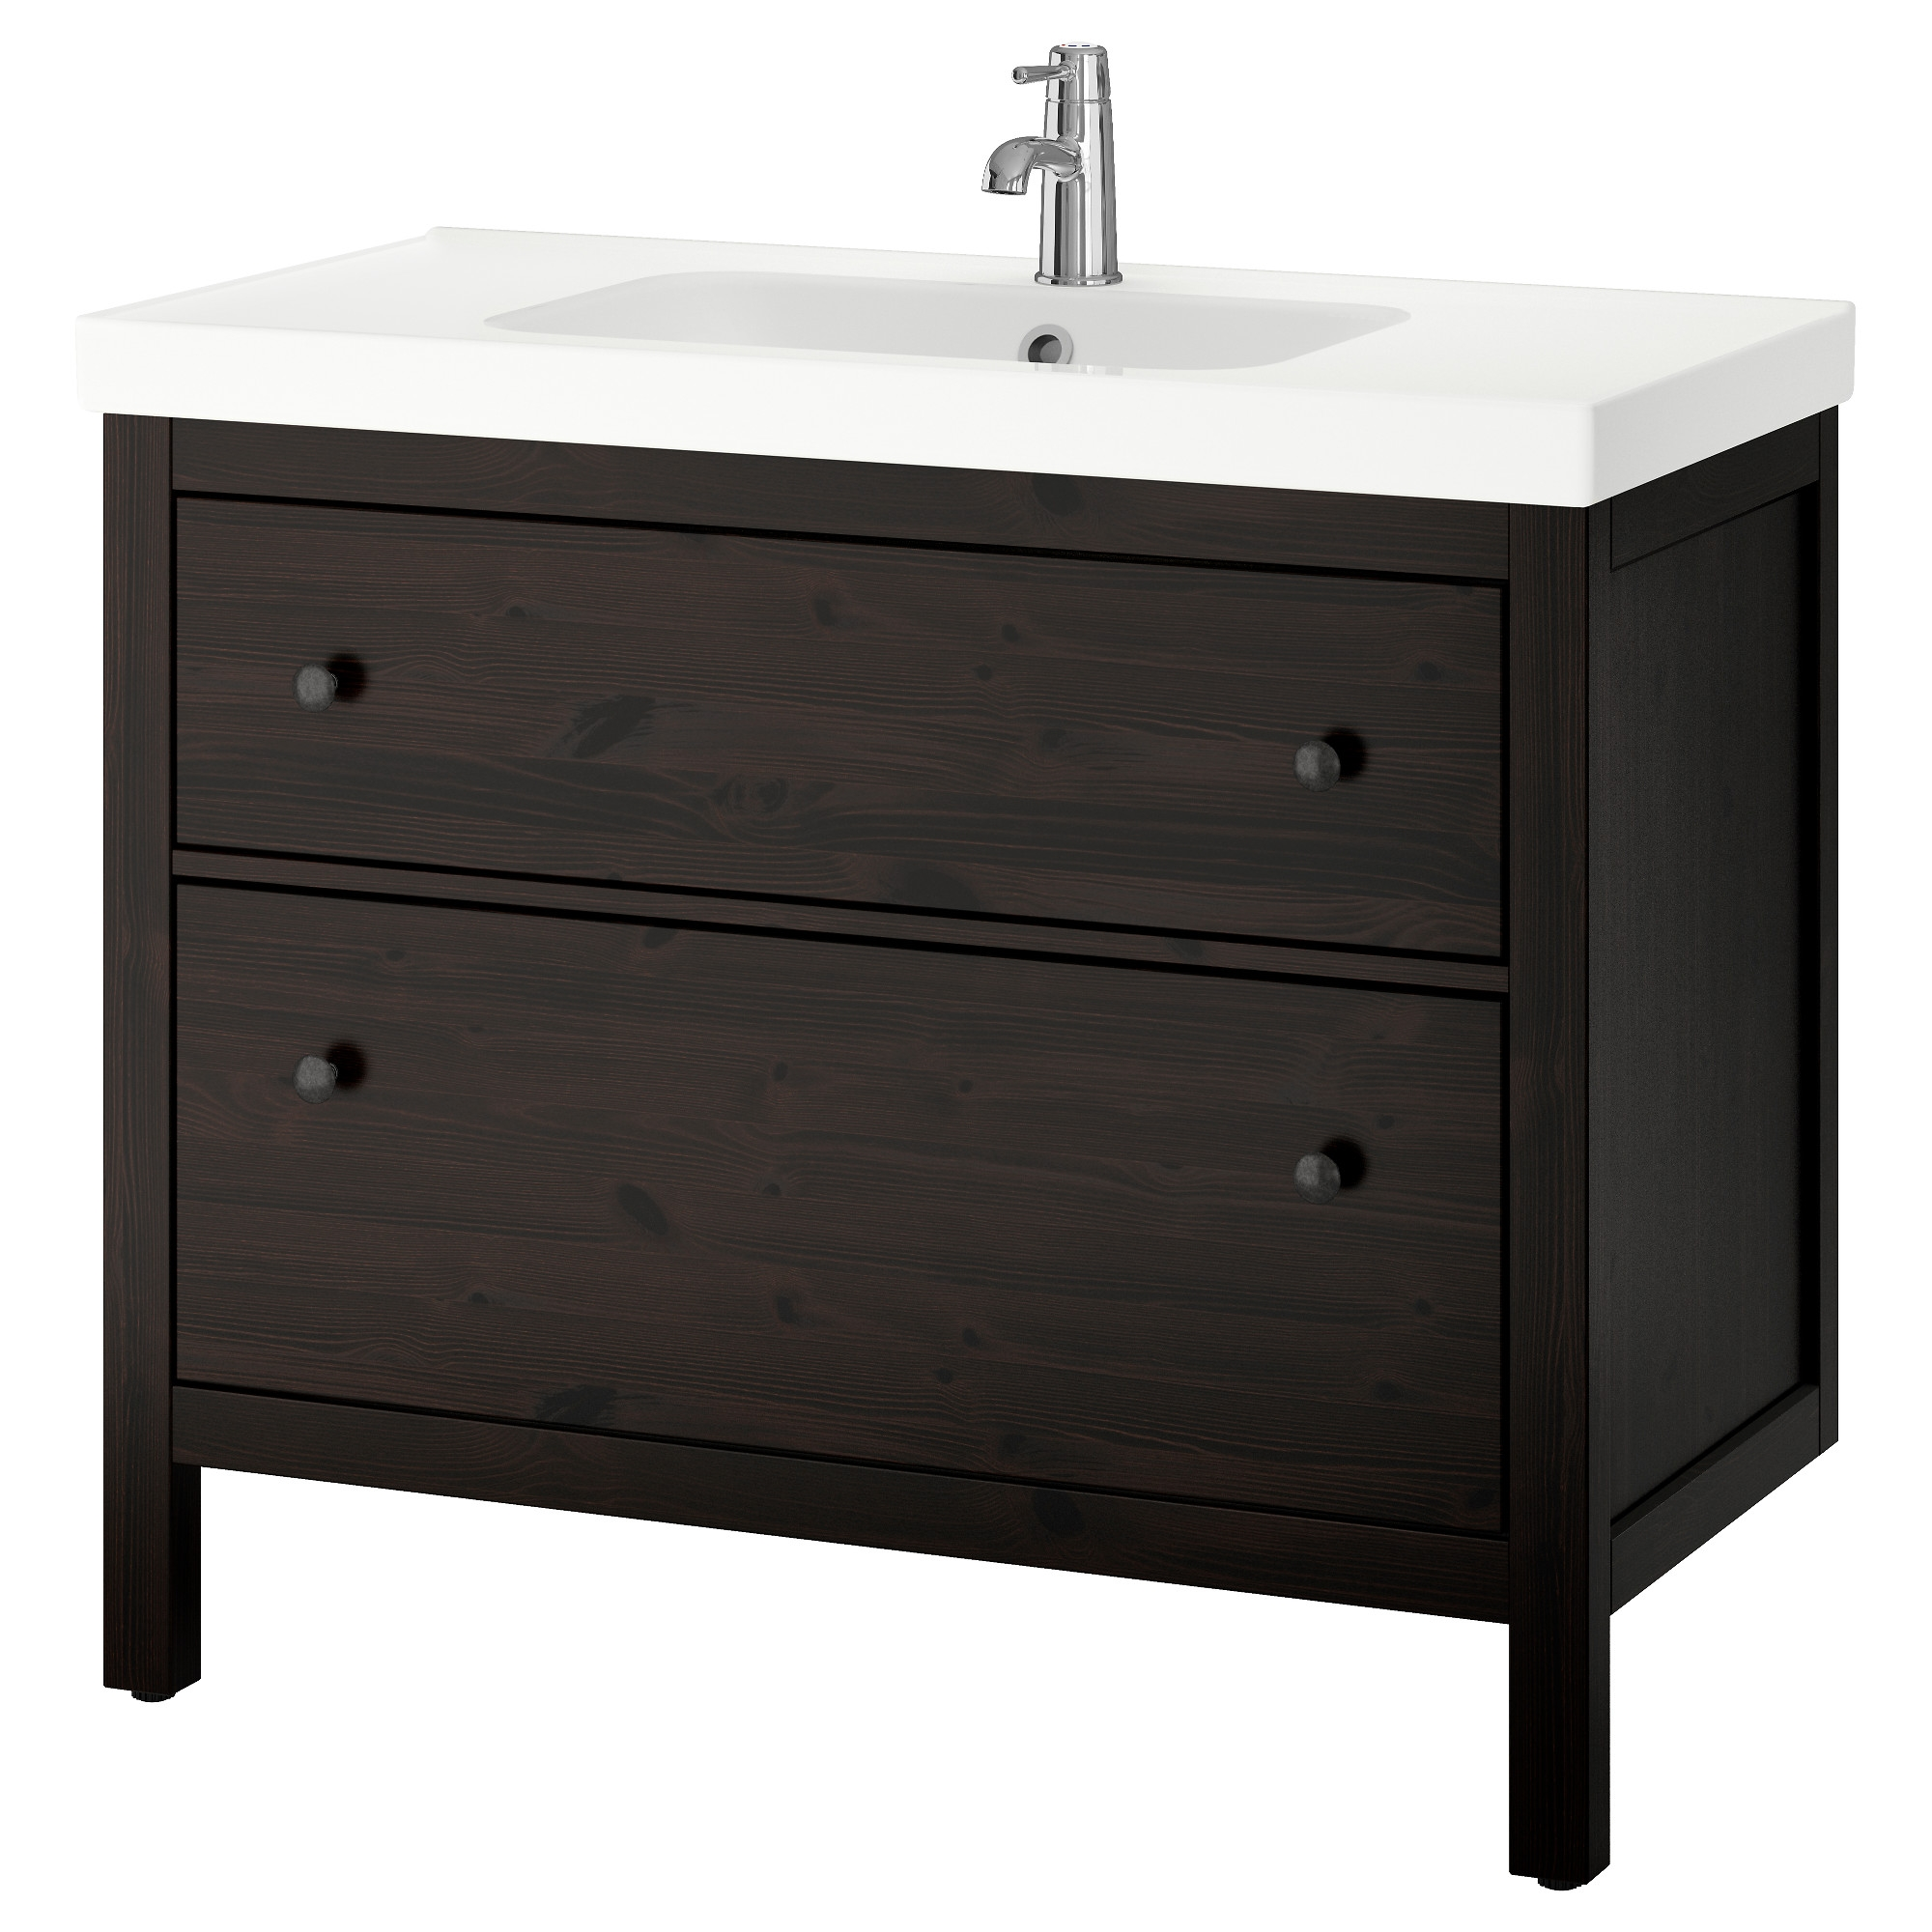 Ikea Bathroom Sink Cabinet Reviews